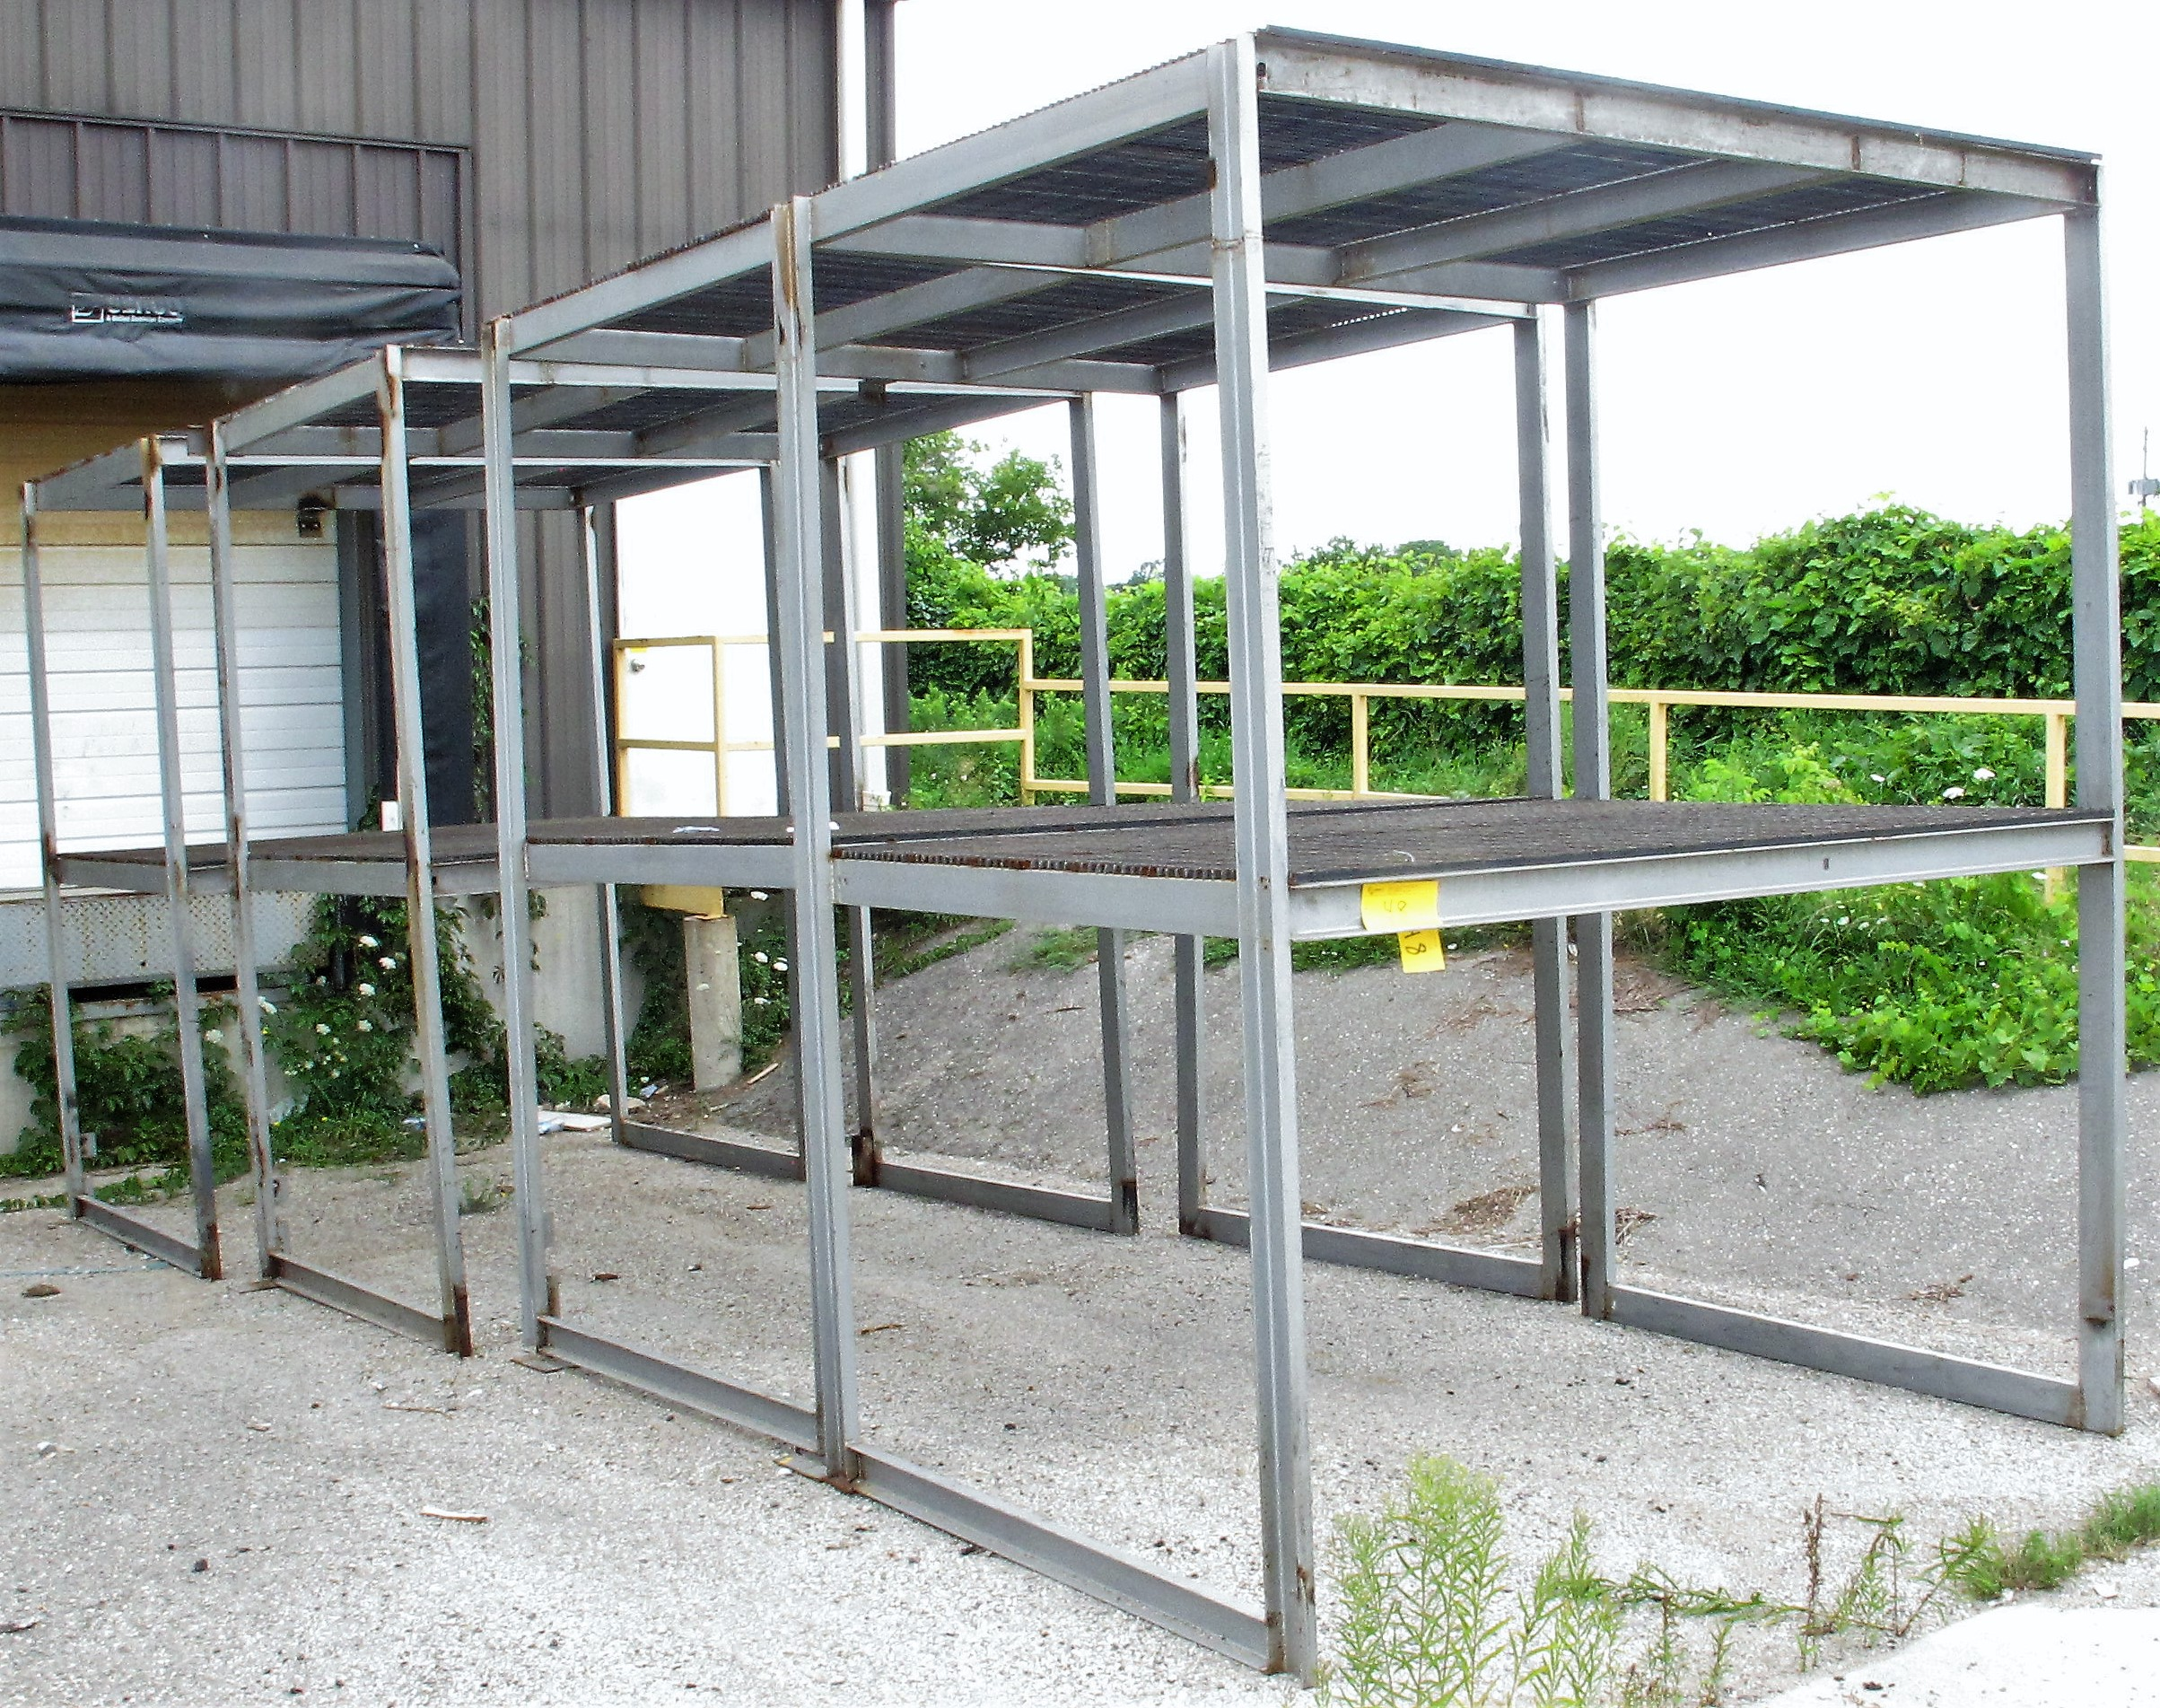 Lot 48 - LOT OF (4) 2-TIERED METAL RACKS (OUTSIDE)